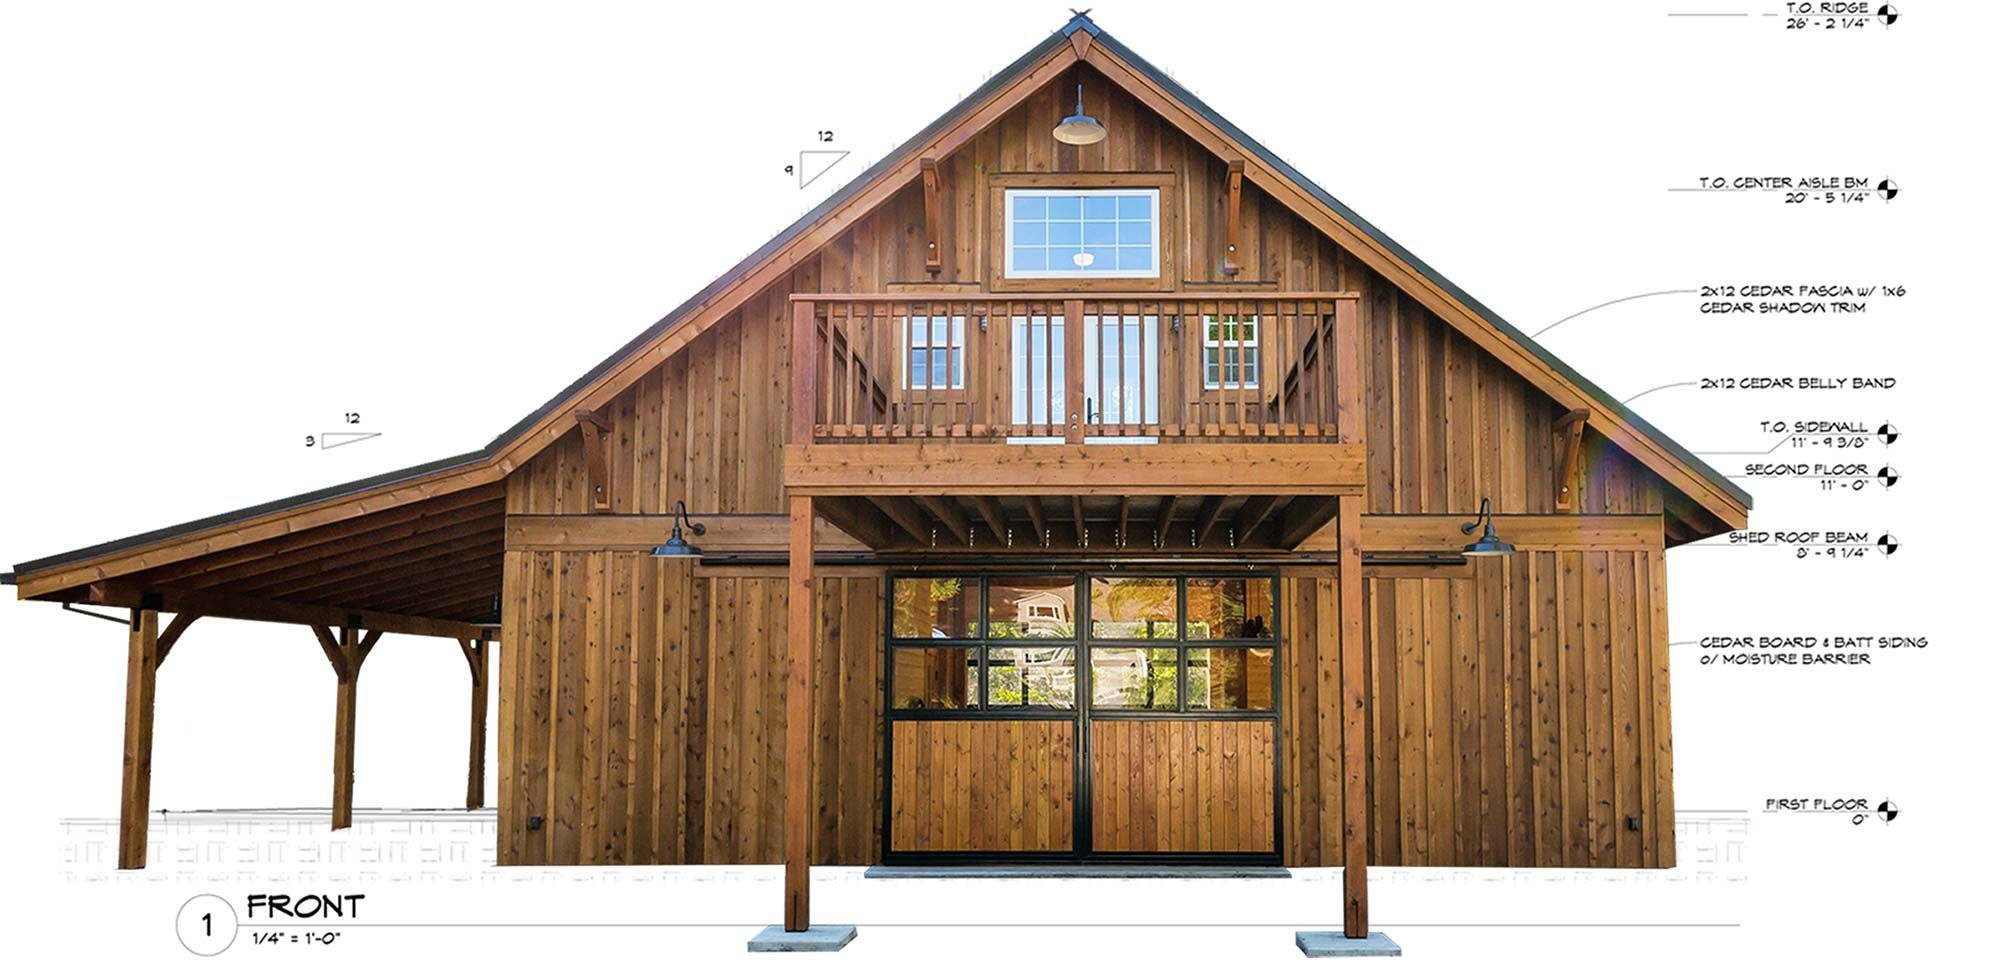 Dc structures is home to america 39 s most complete barn kits for Horse barn with apartment plans